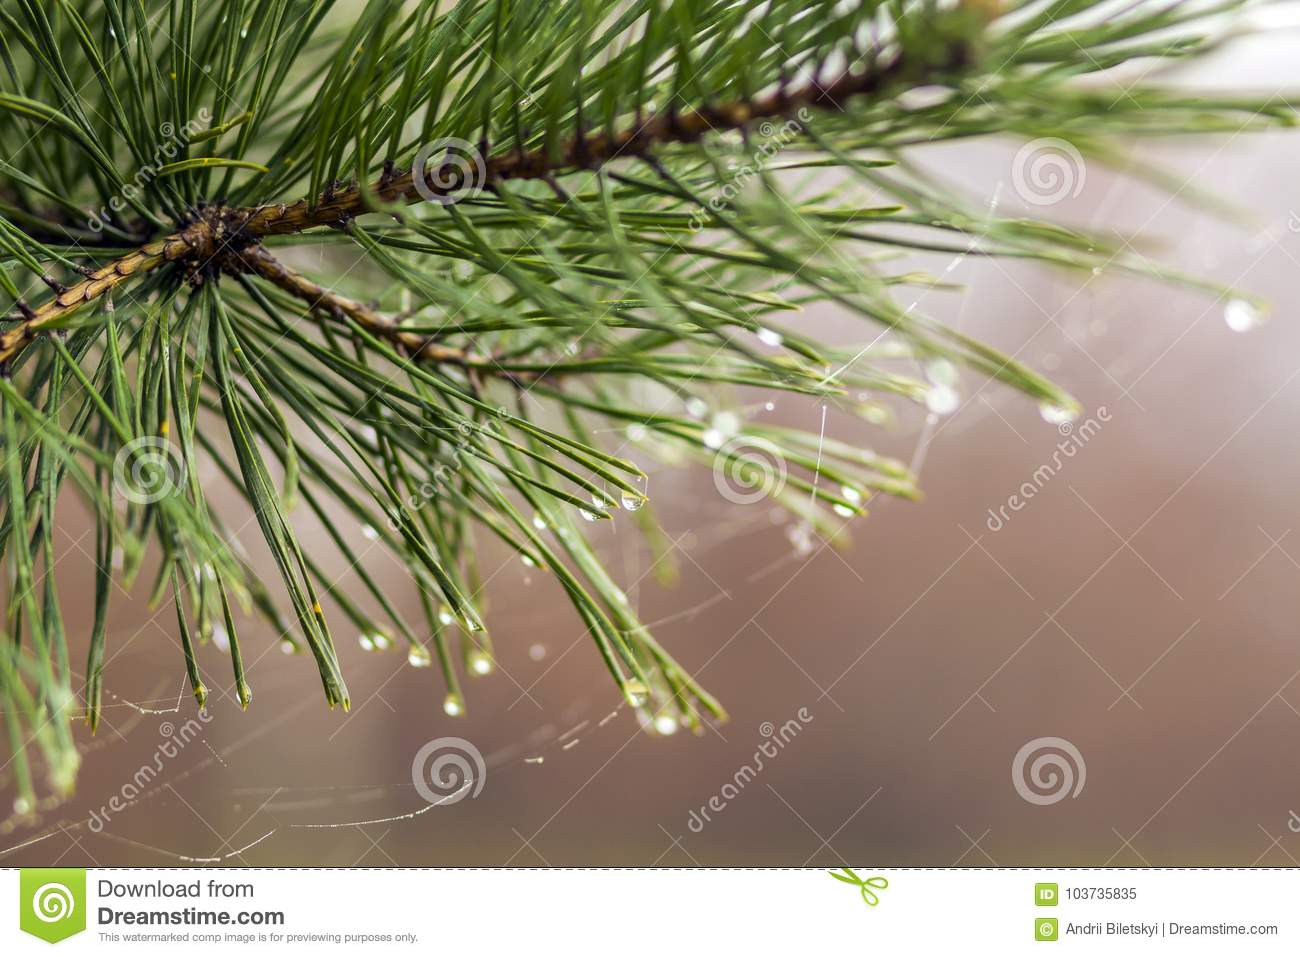 Pine tree needles with water drops close-up